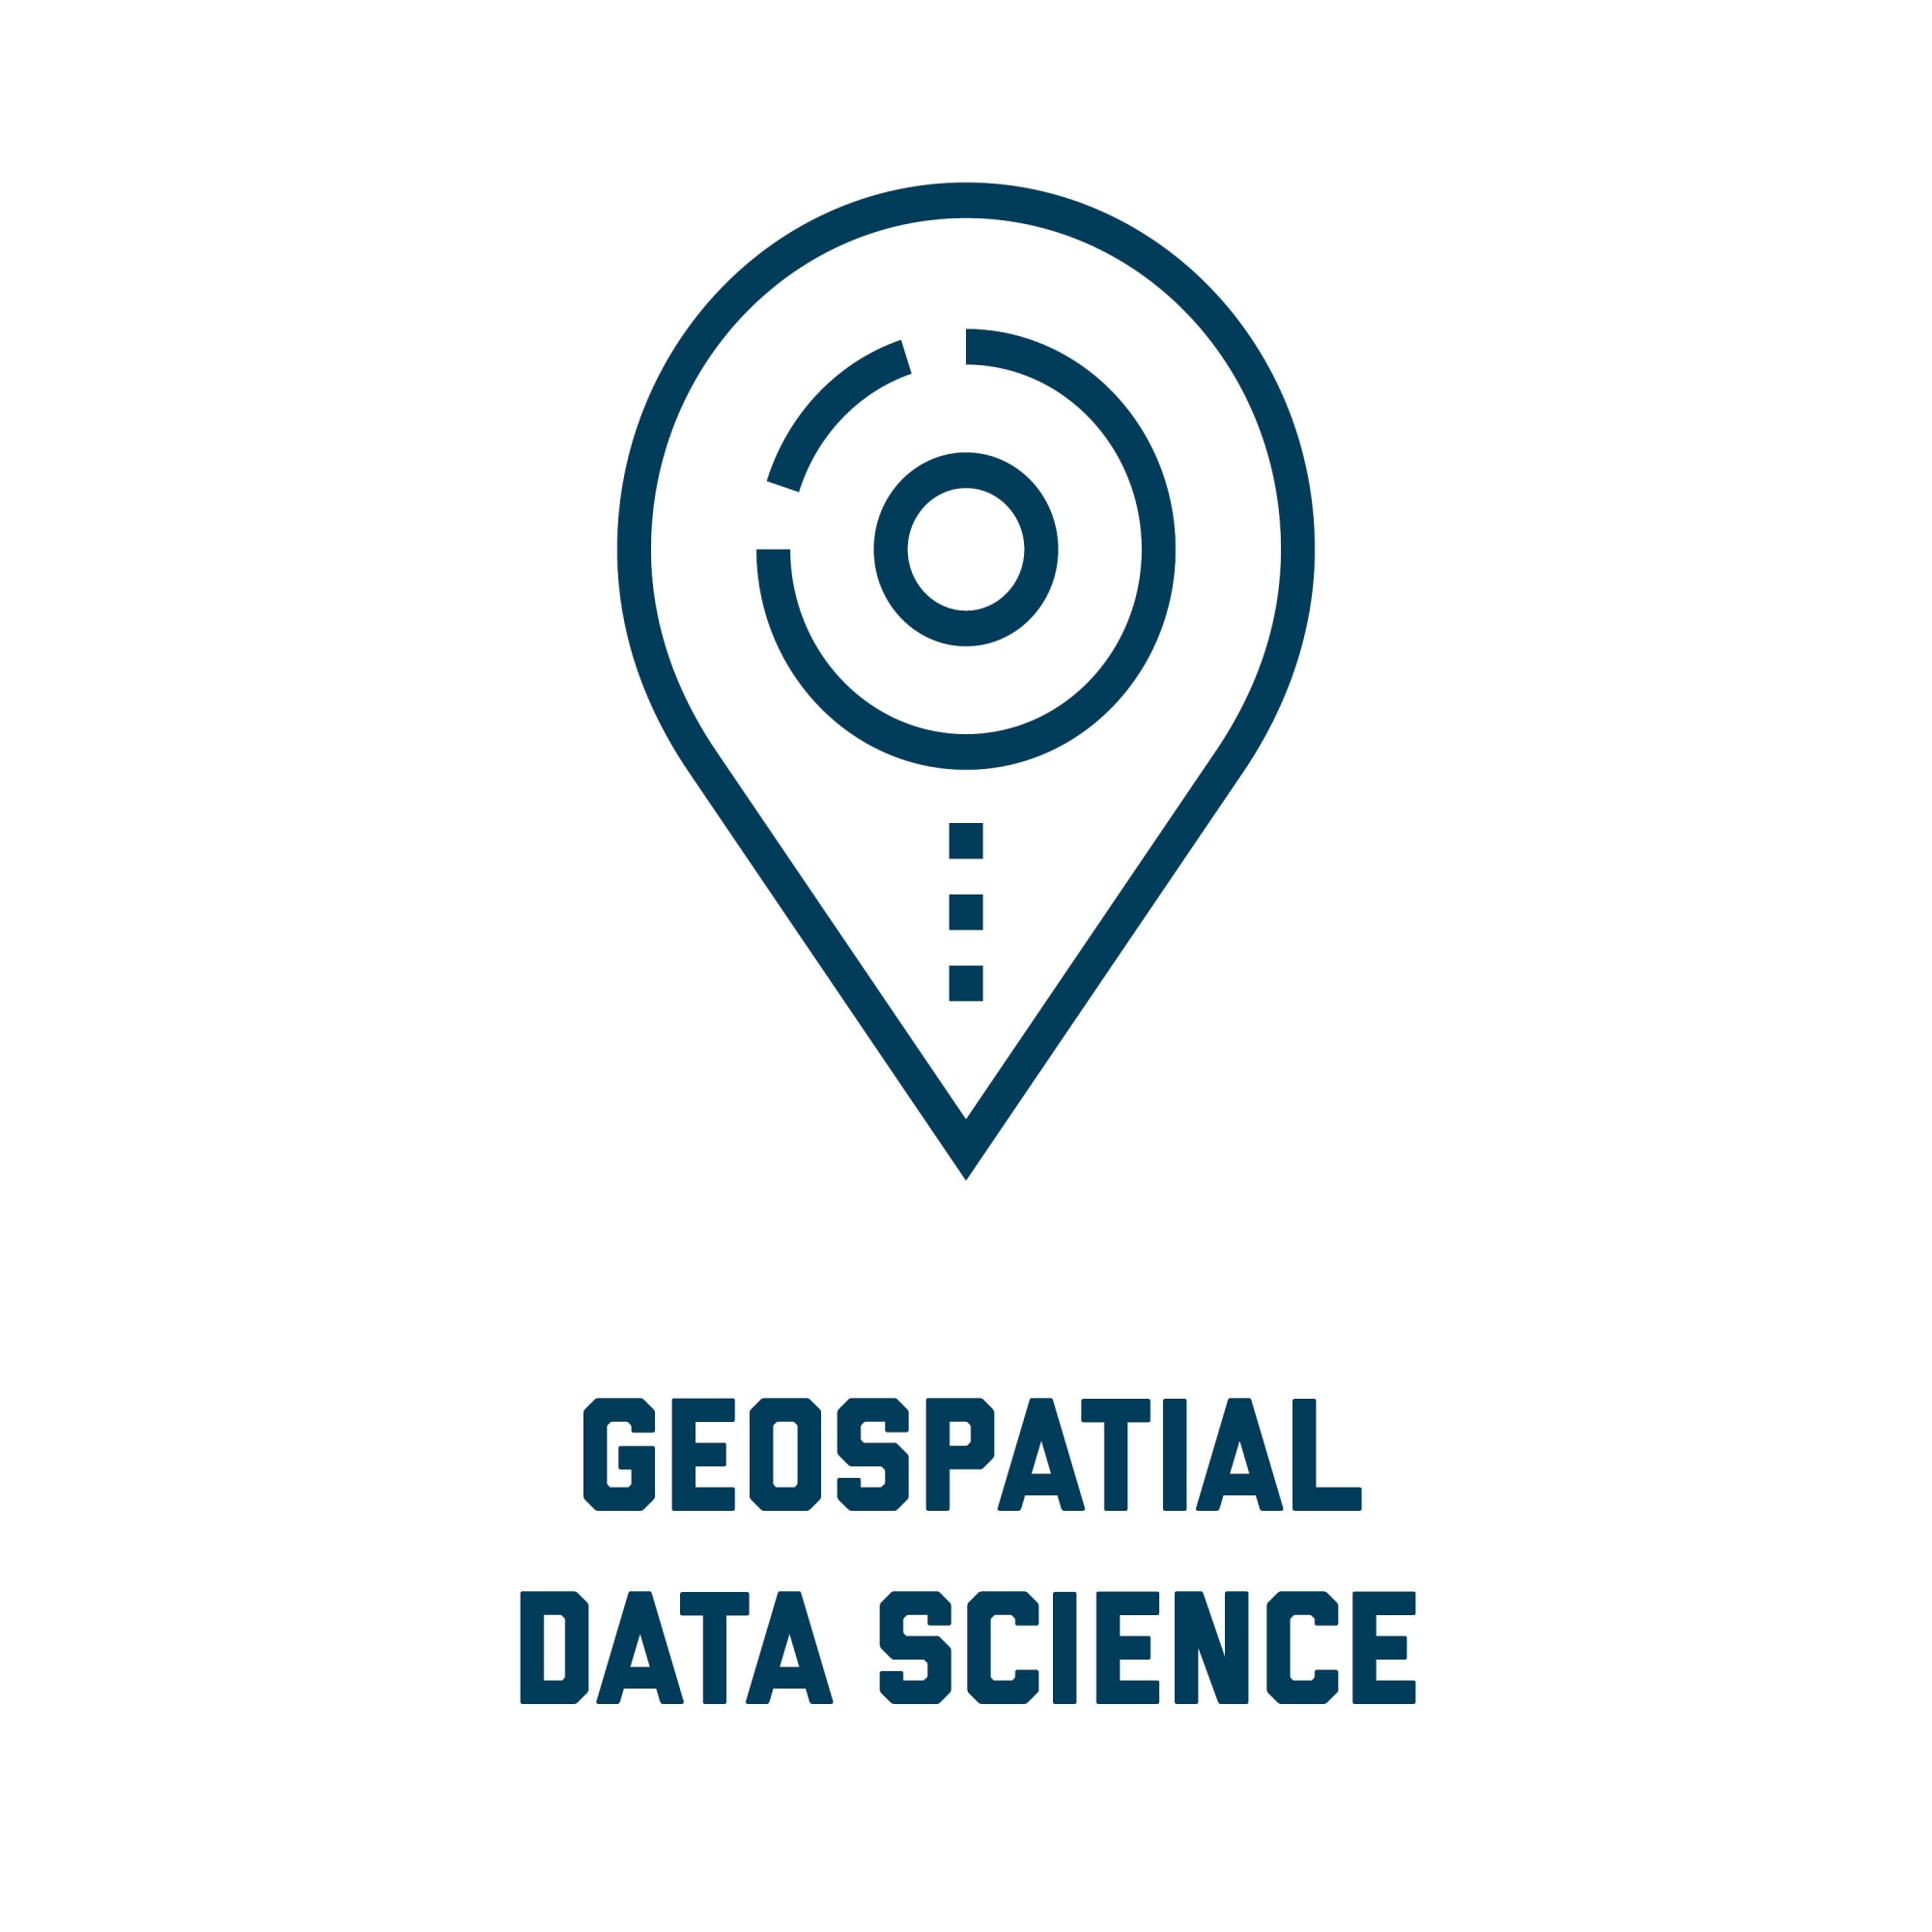 Graphic: Geospatial Data Science